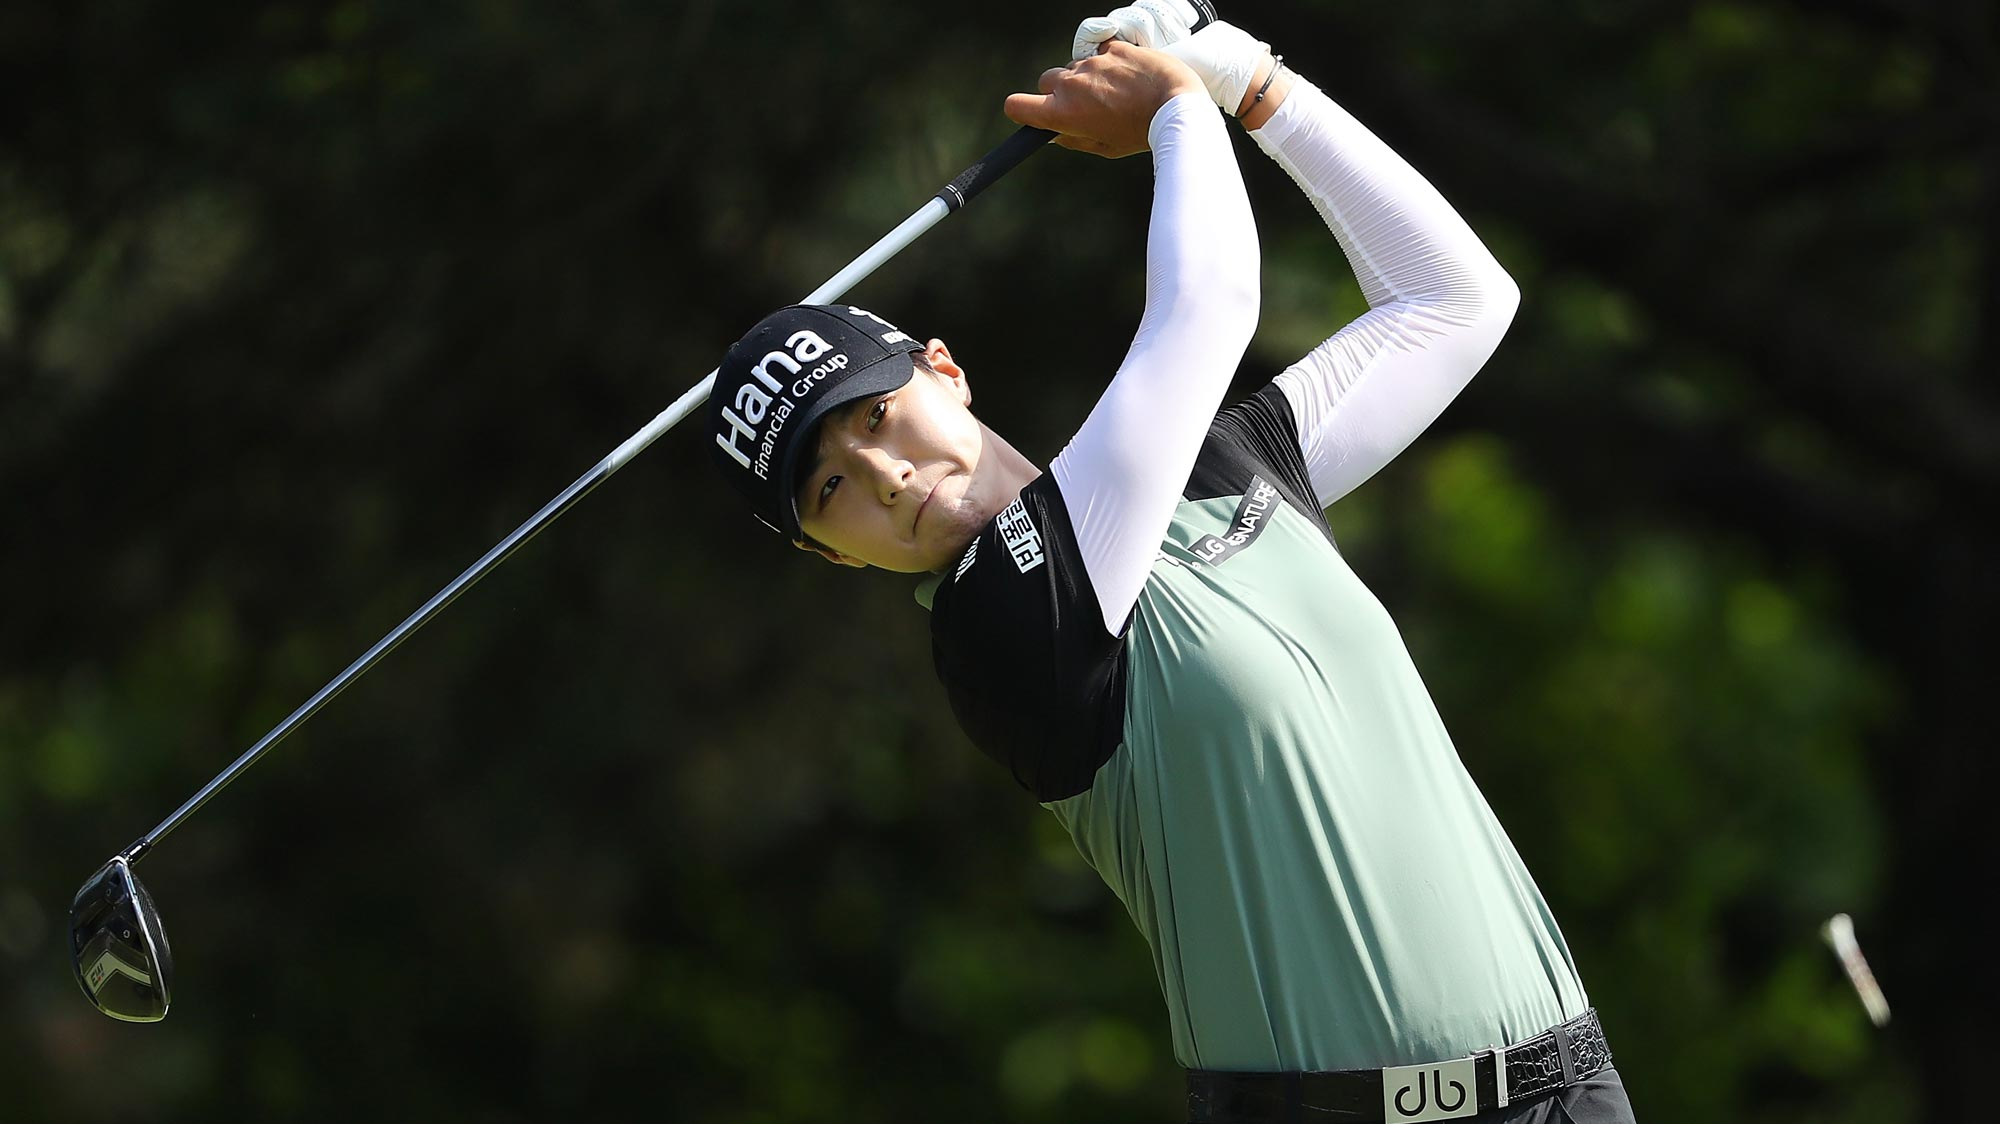 Sung Hyun Park of Korea hits her drive on the second hole during the final round of the 2018 KPMG Women's PGA Championship